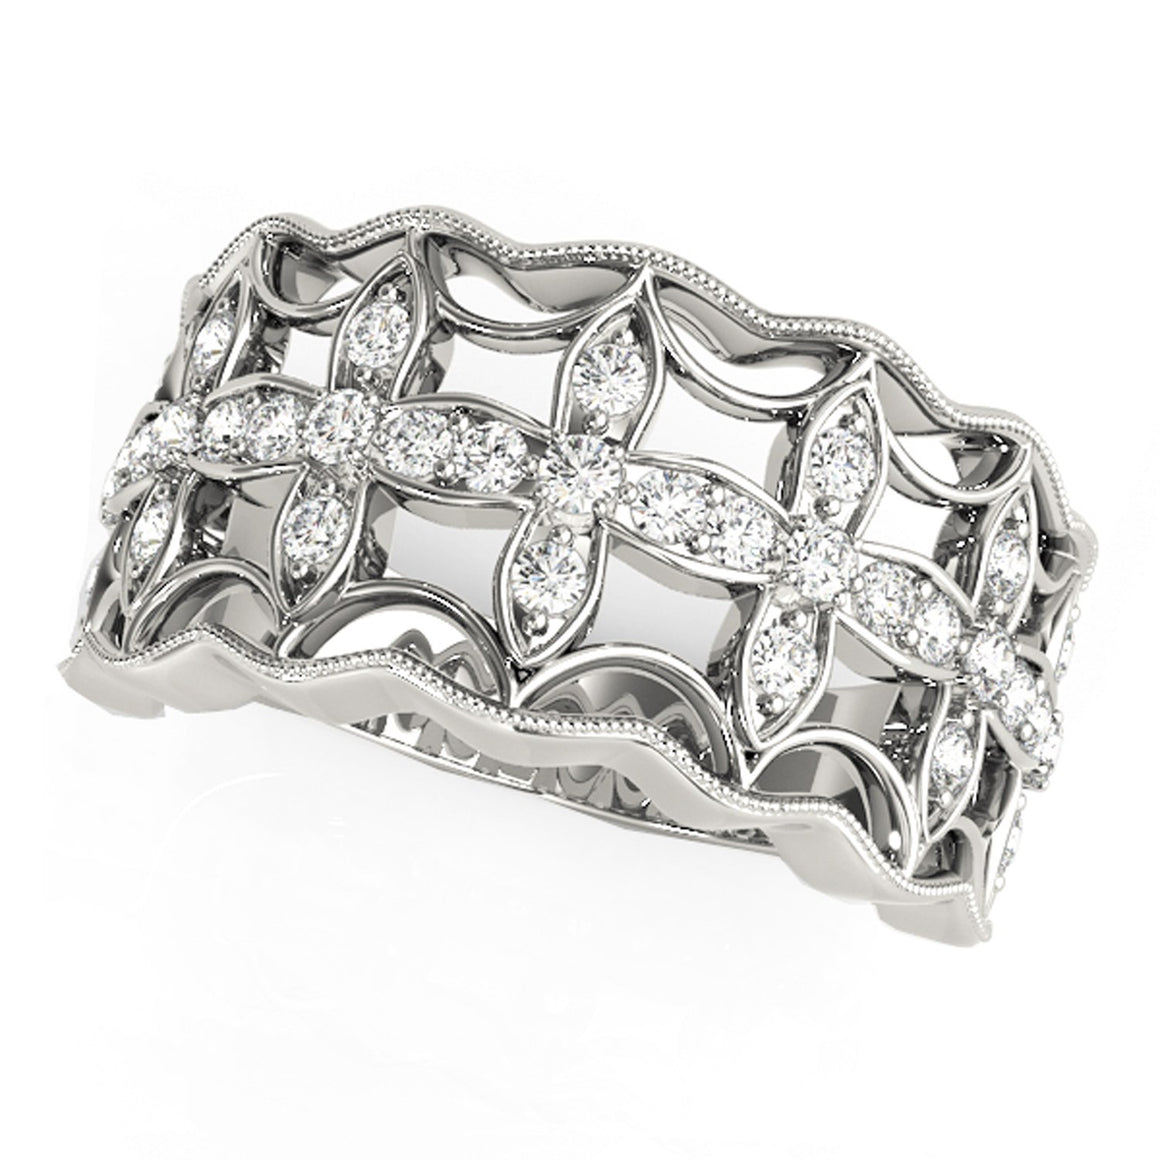 Diamond Studded Four Leaf Clover Motif Ring in 14k White Gold (1/4 cttw)